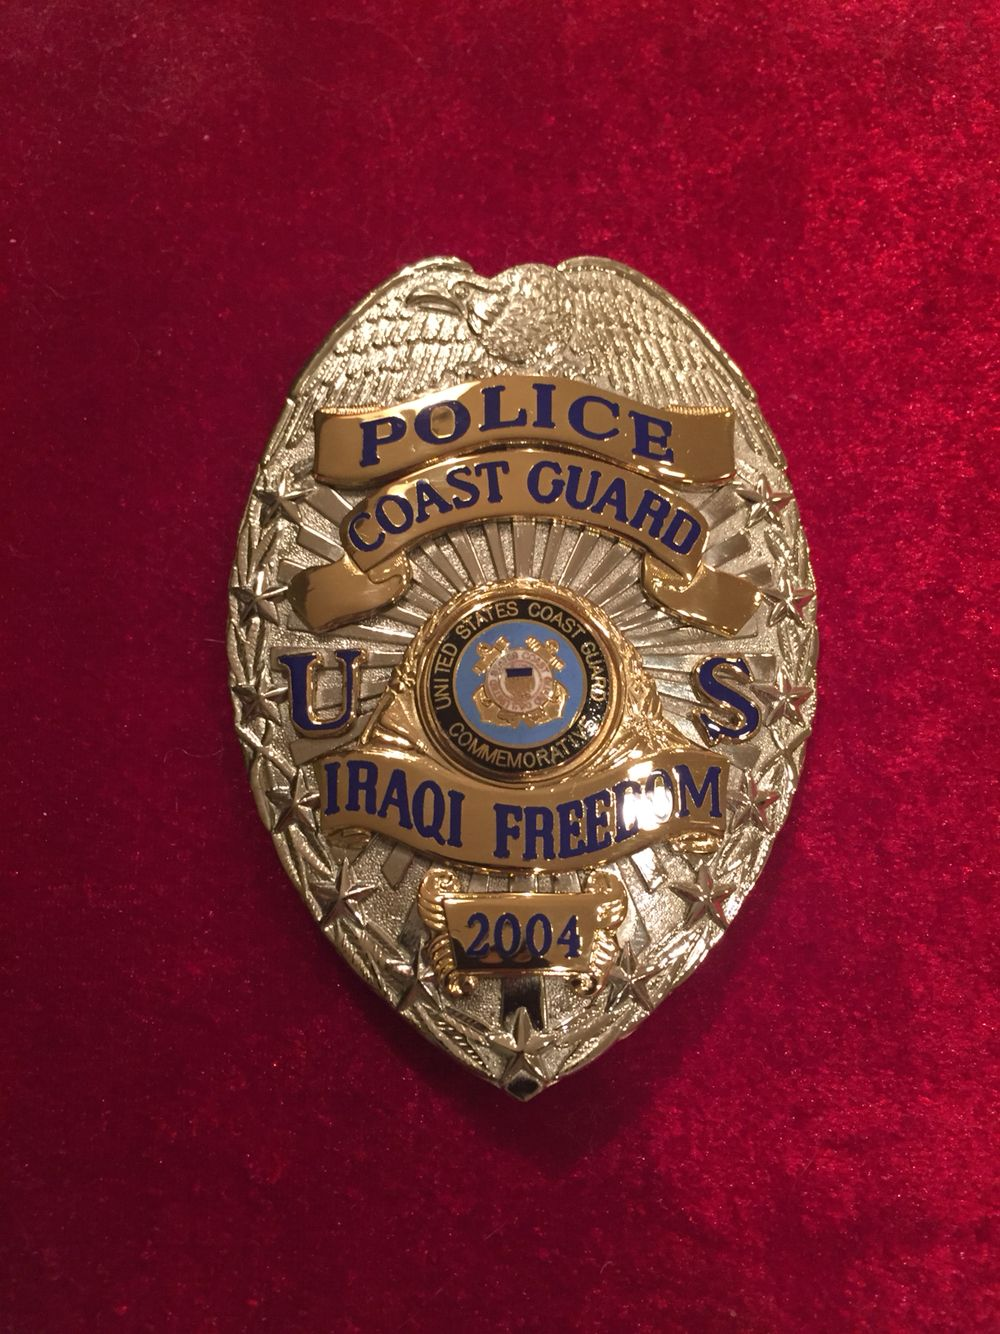 United States Coast Guard Police Officer Badge Iraq